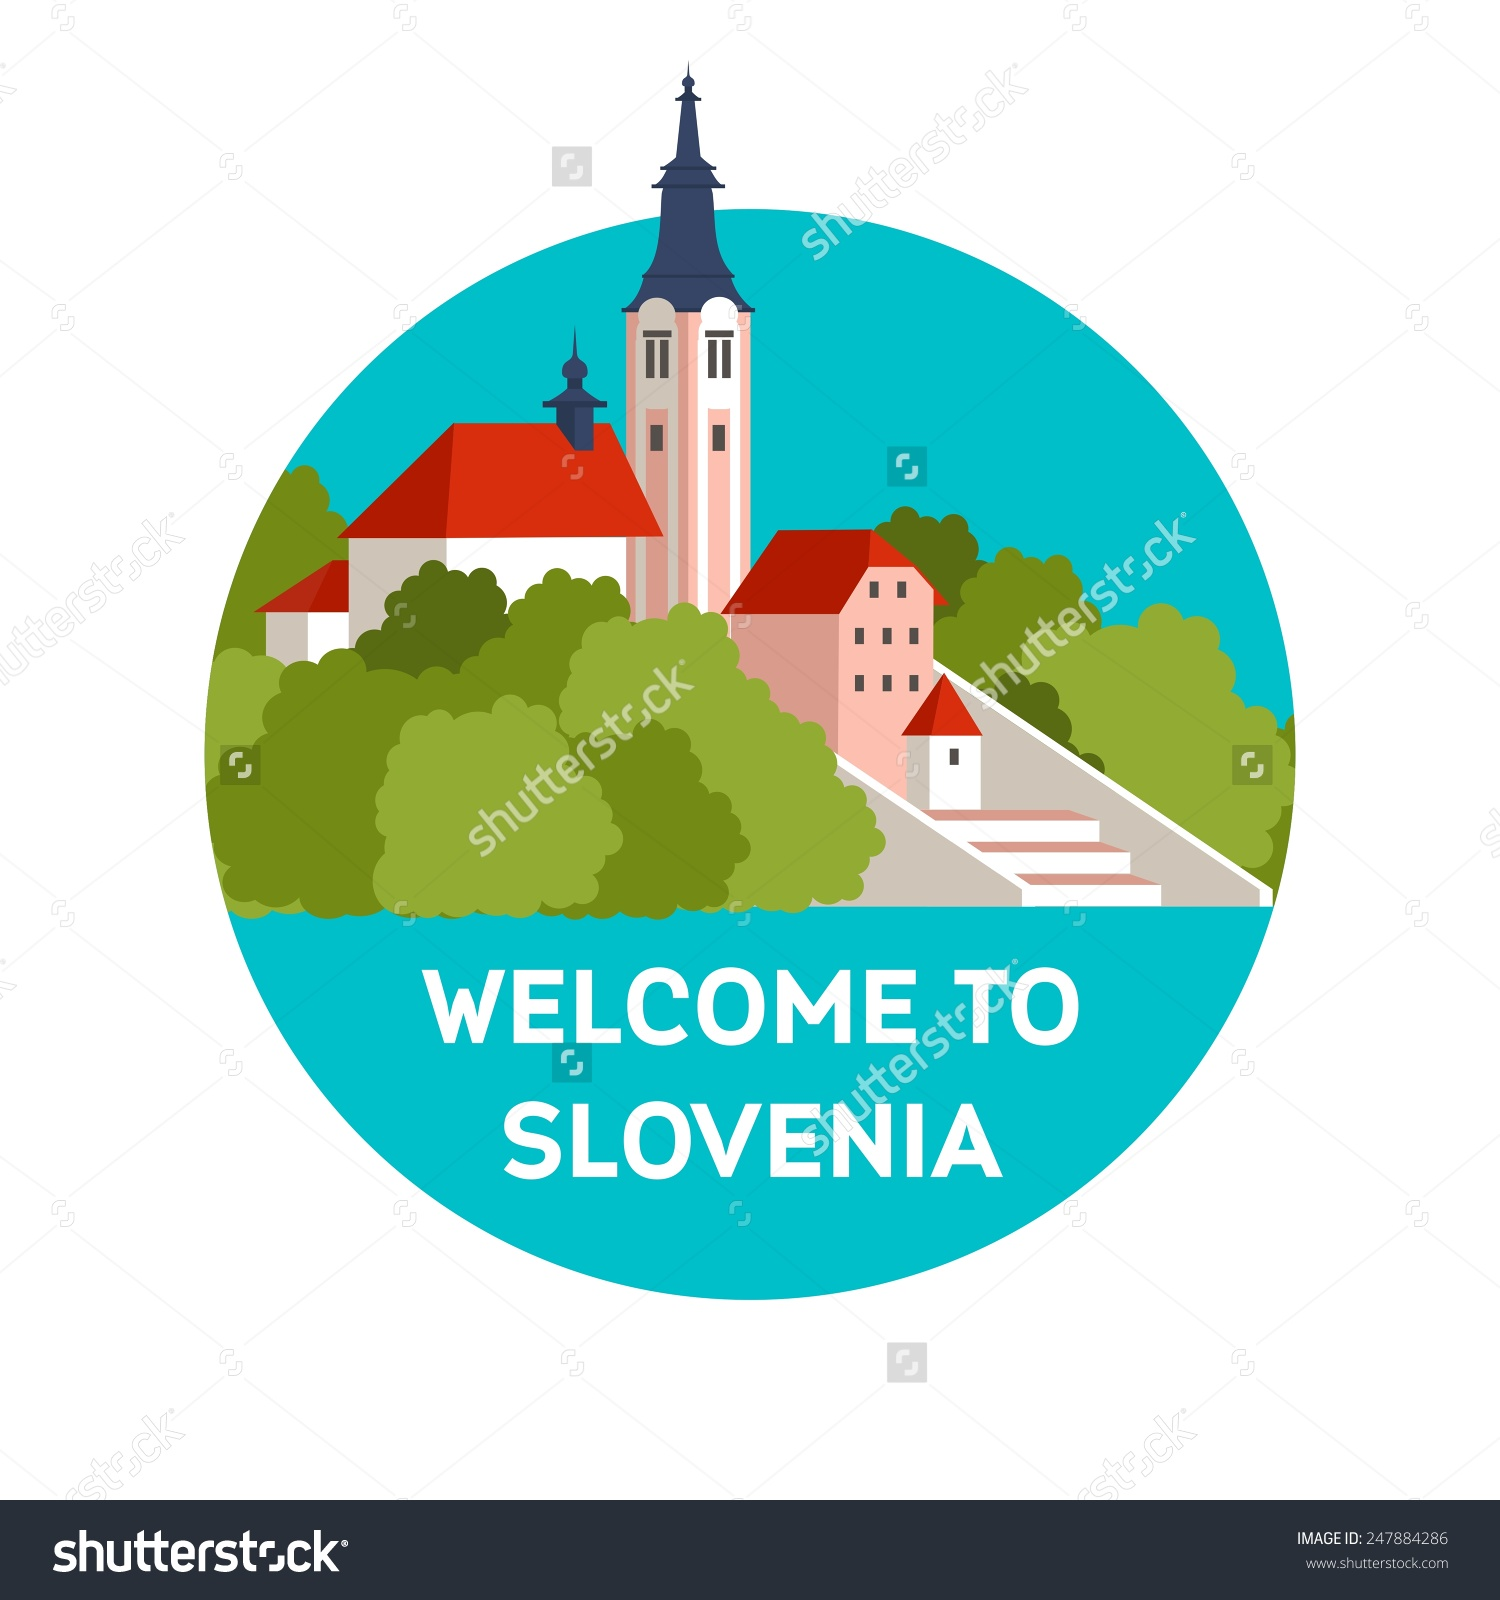 Slovenia clipart #3, Download drawings